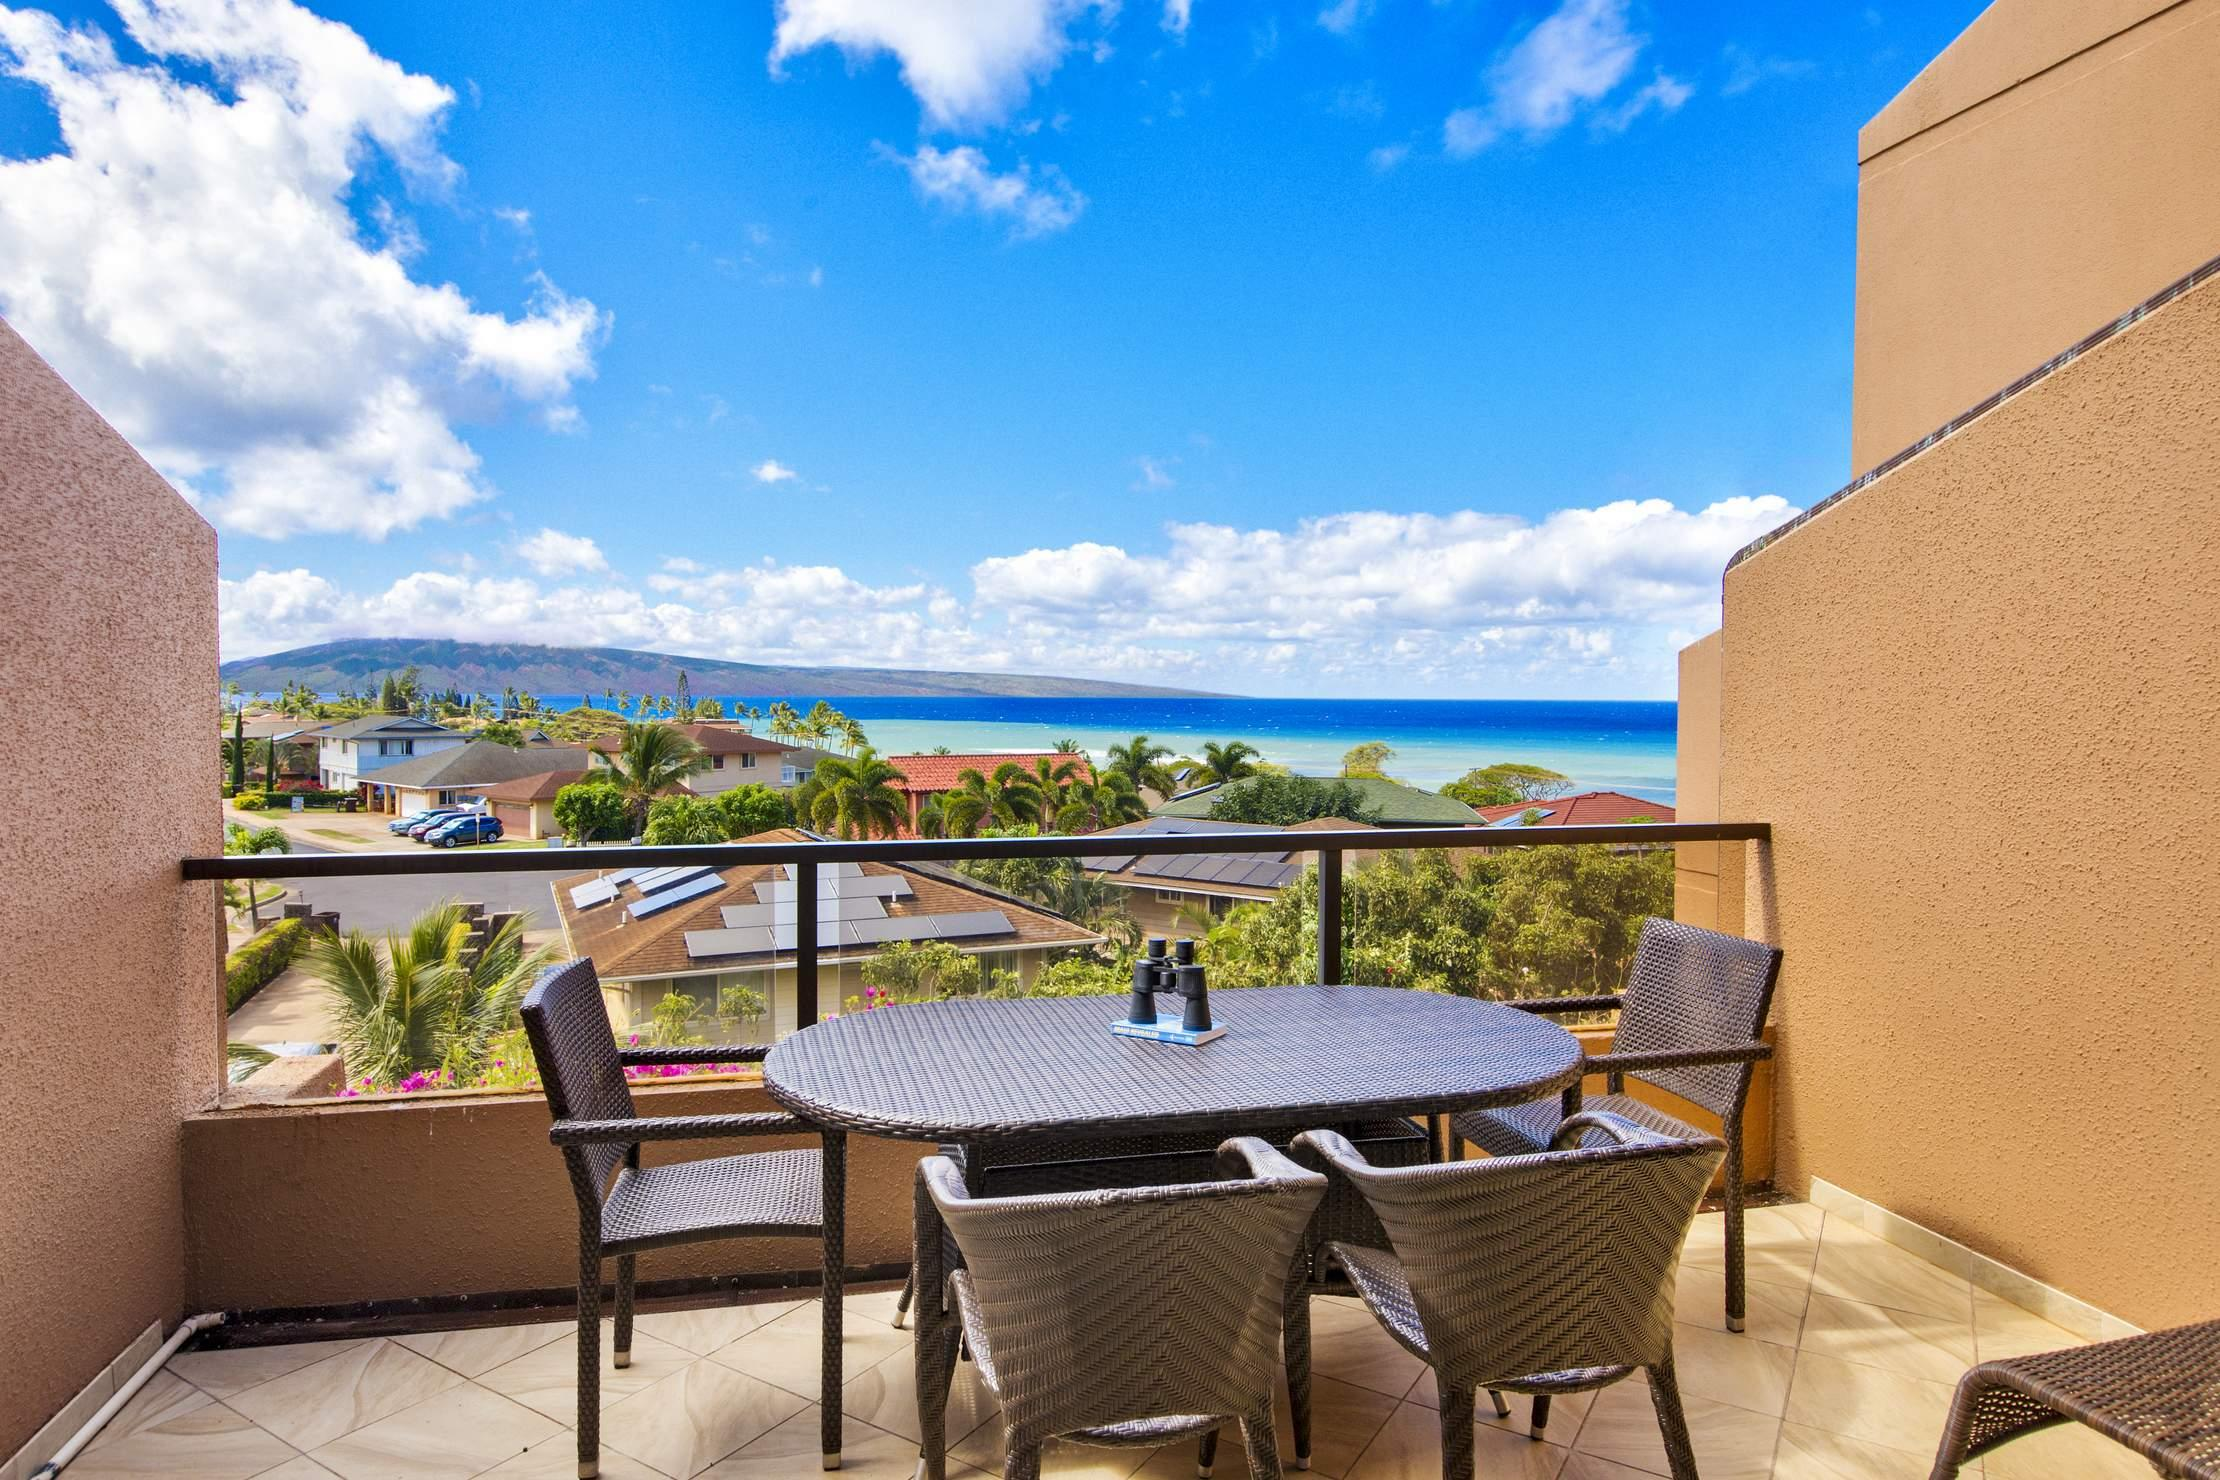 Aloha, welcome to Lahaina! Your ocean-view condo is professionally managed by TurnKey Vacation Rentals.